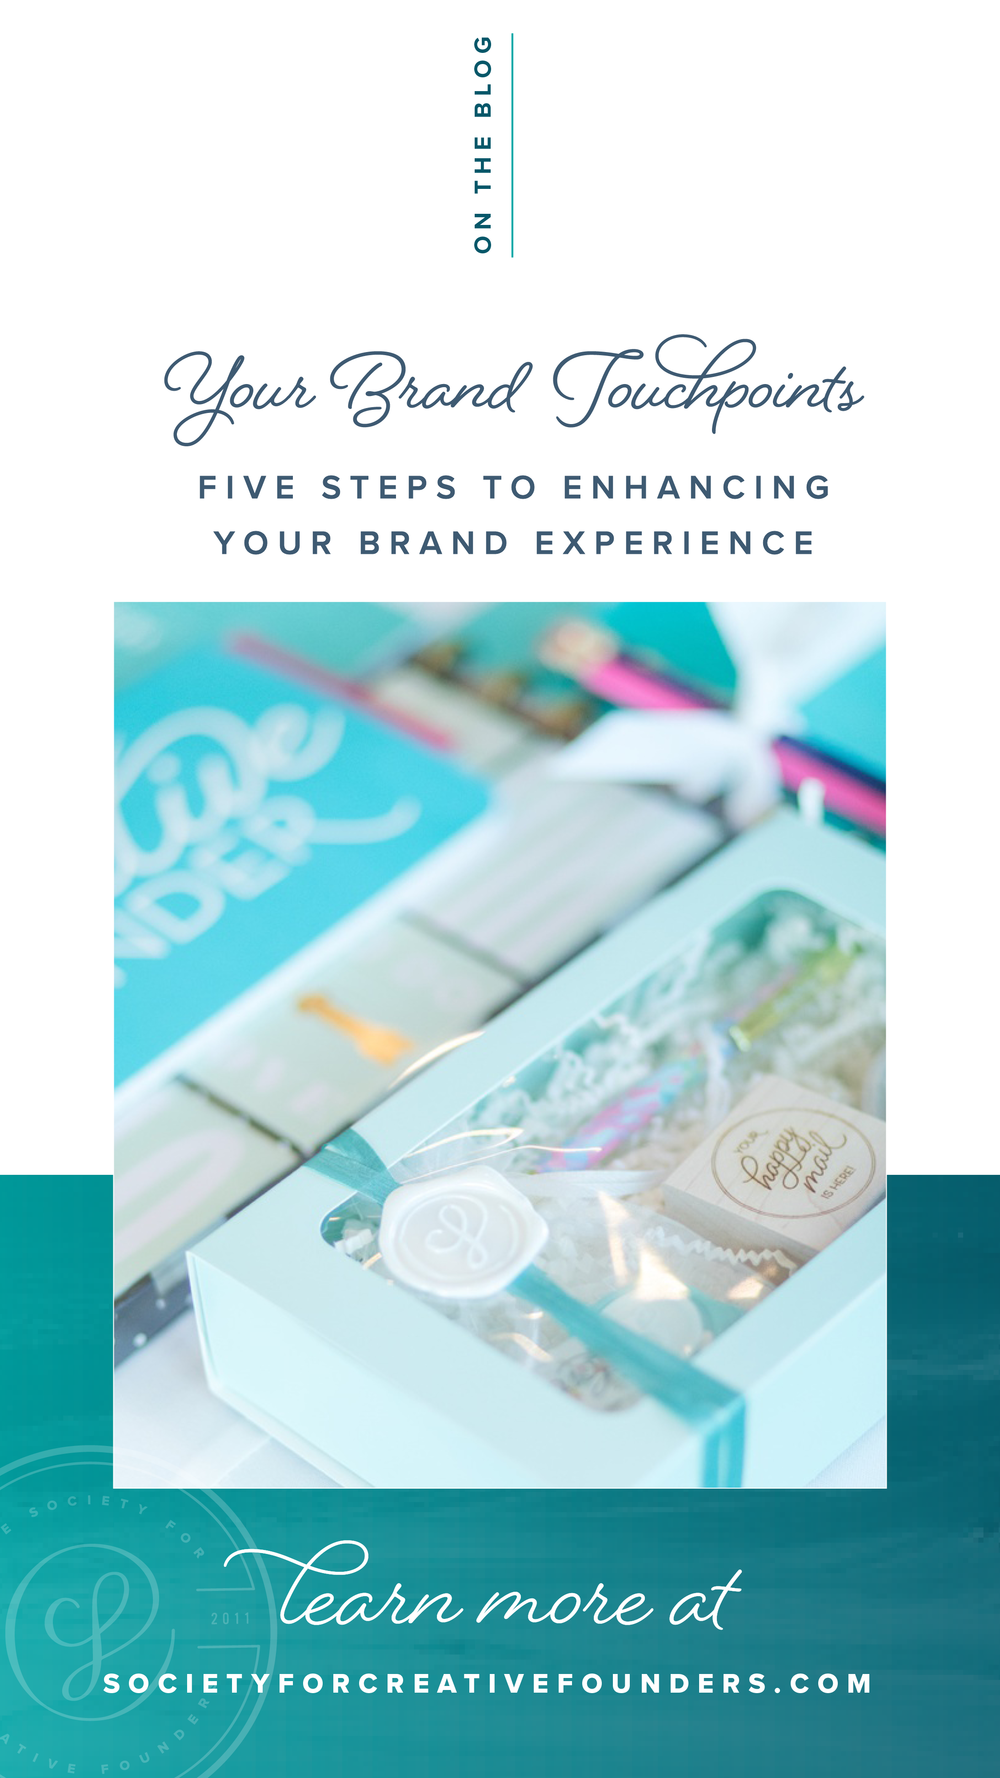 Enhancing your Brand Experience with Brand Touchpoints - Society for Creative Founders